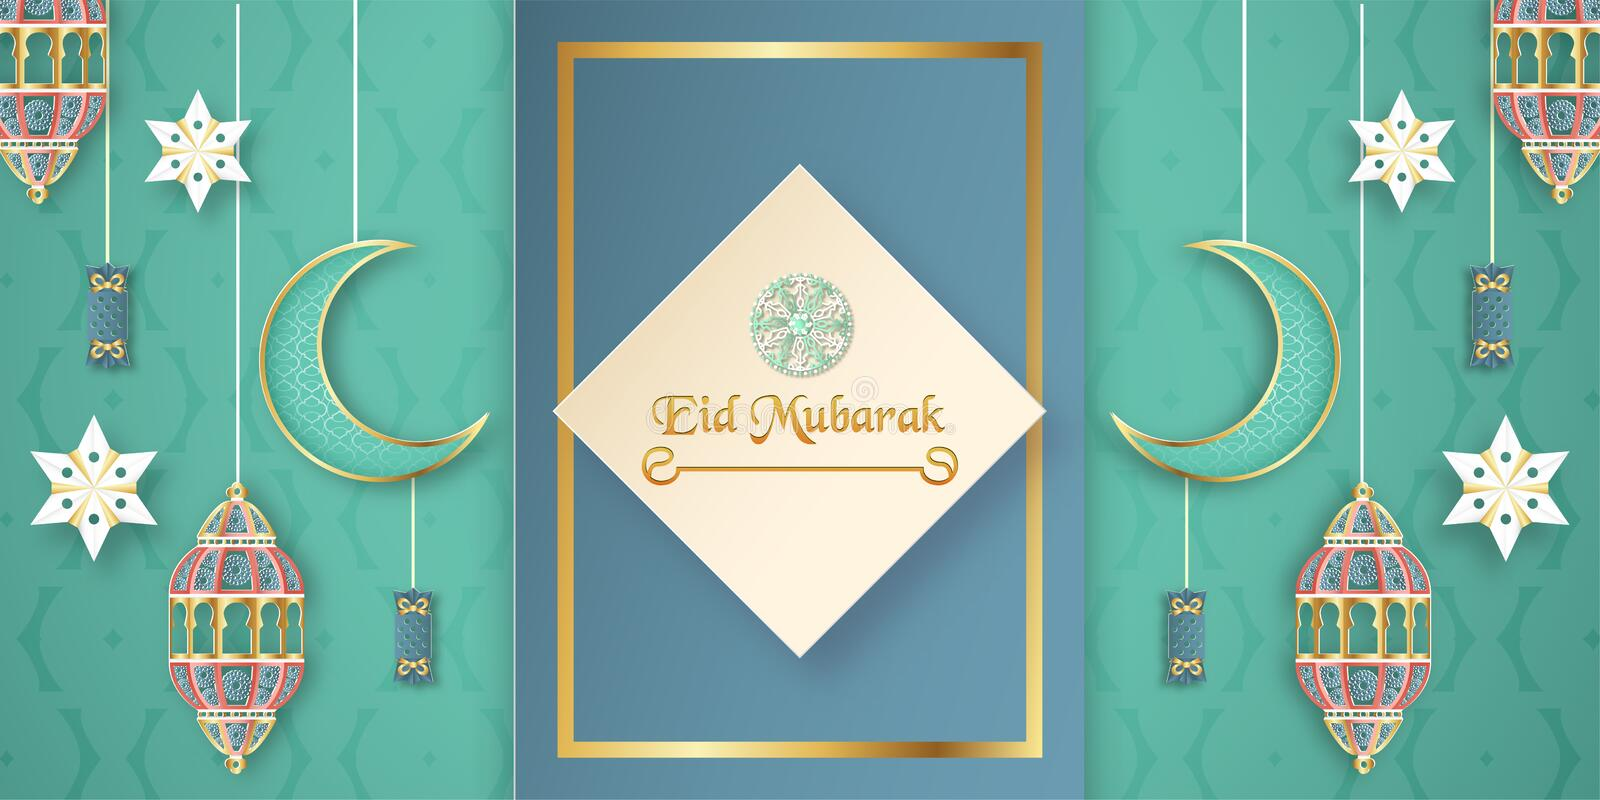 Template for Eid Mubarak with green and gold color tone. 3D Vector illustration in paper cut and craft  for islamic greeting card vector illustration